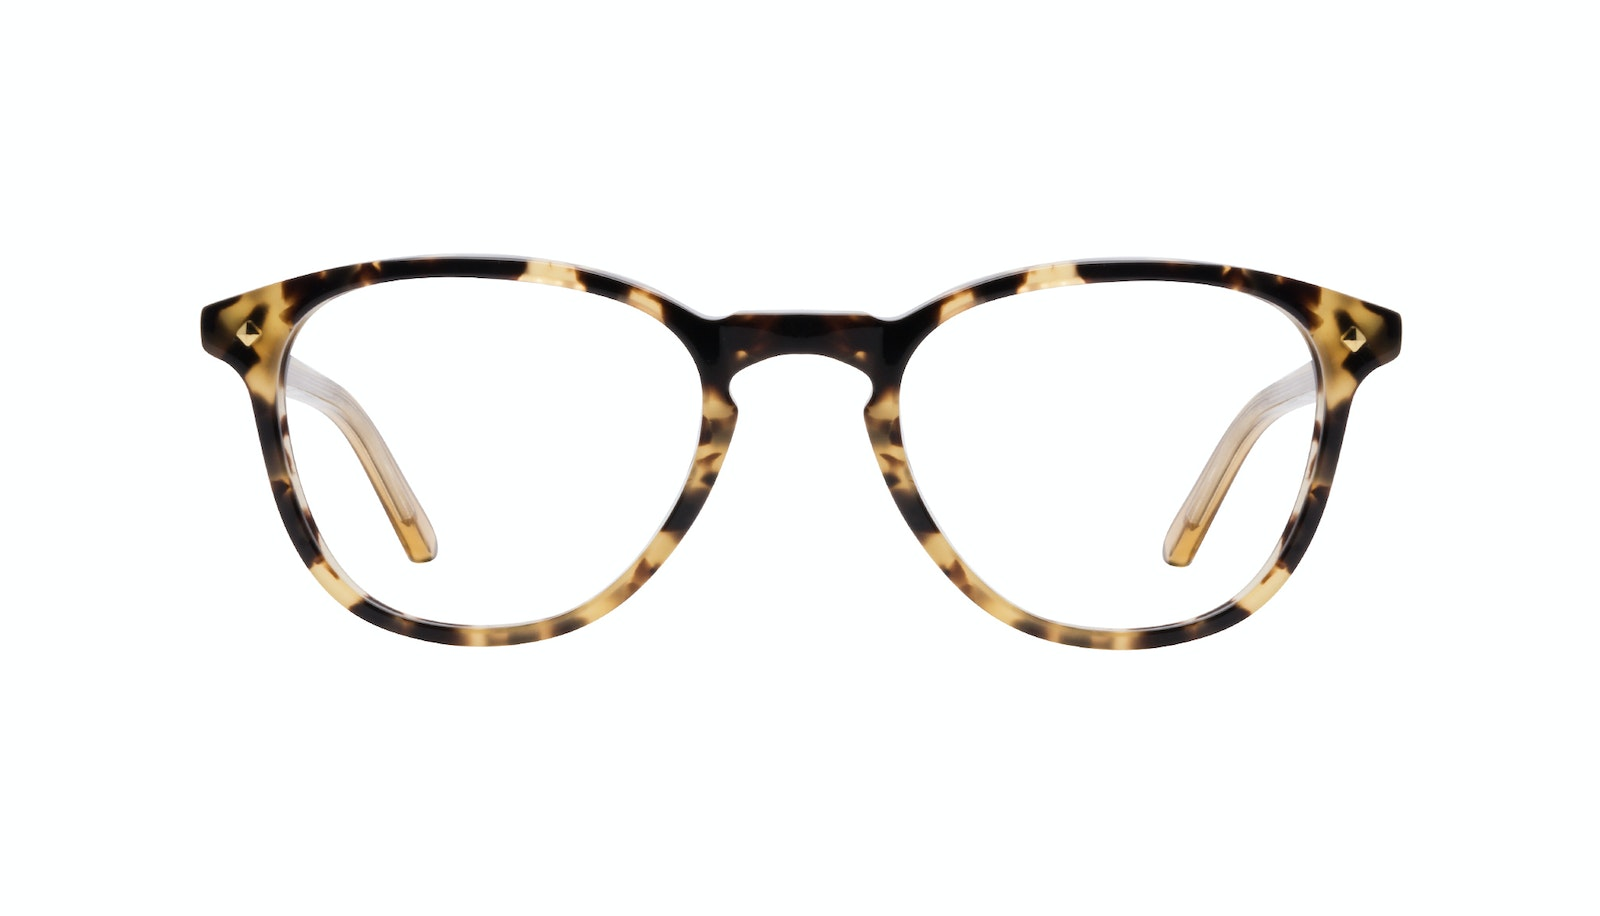 Affordable Fashion Glasses Round Eyeglasses Women Crush Bingal